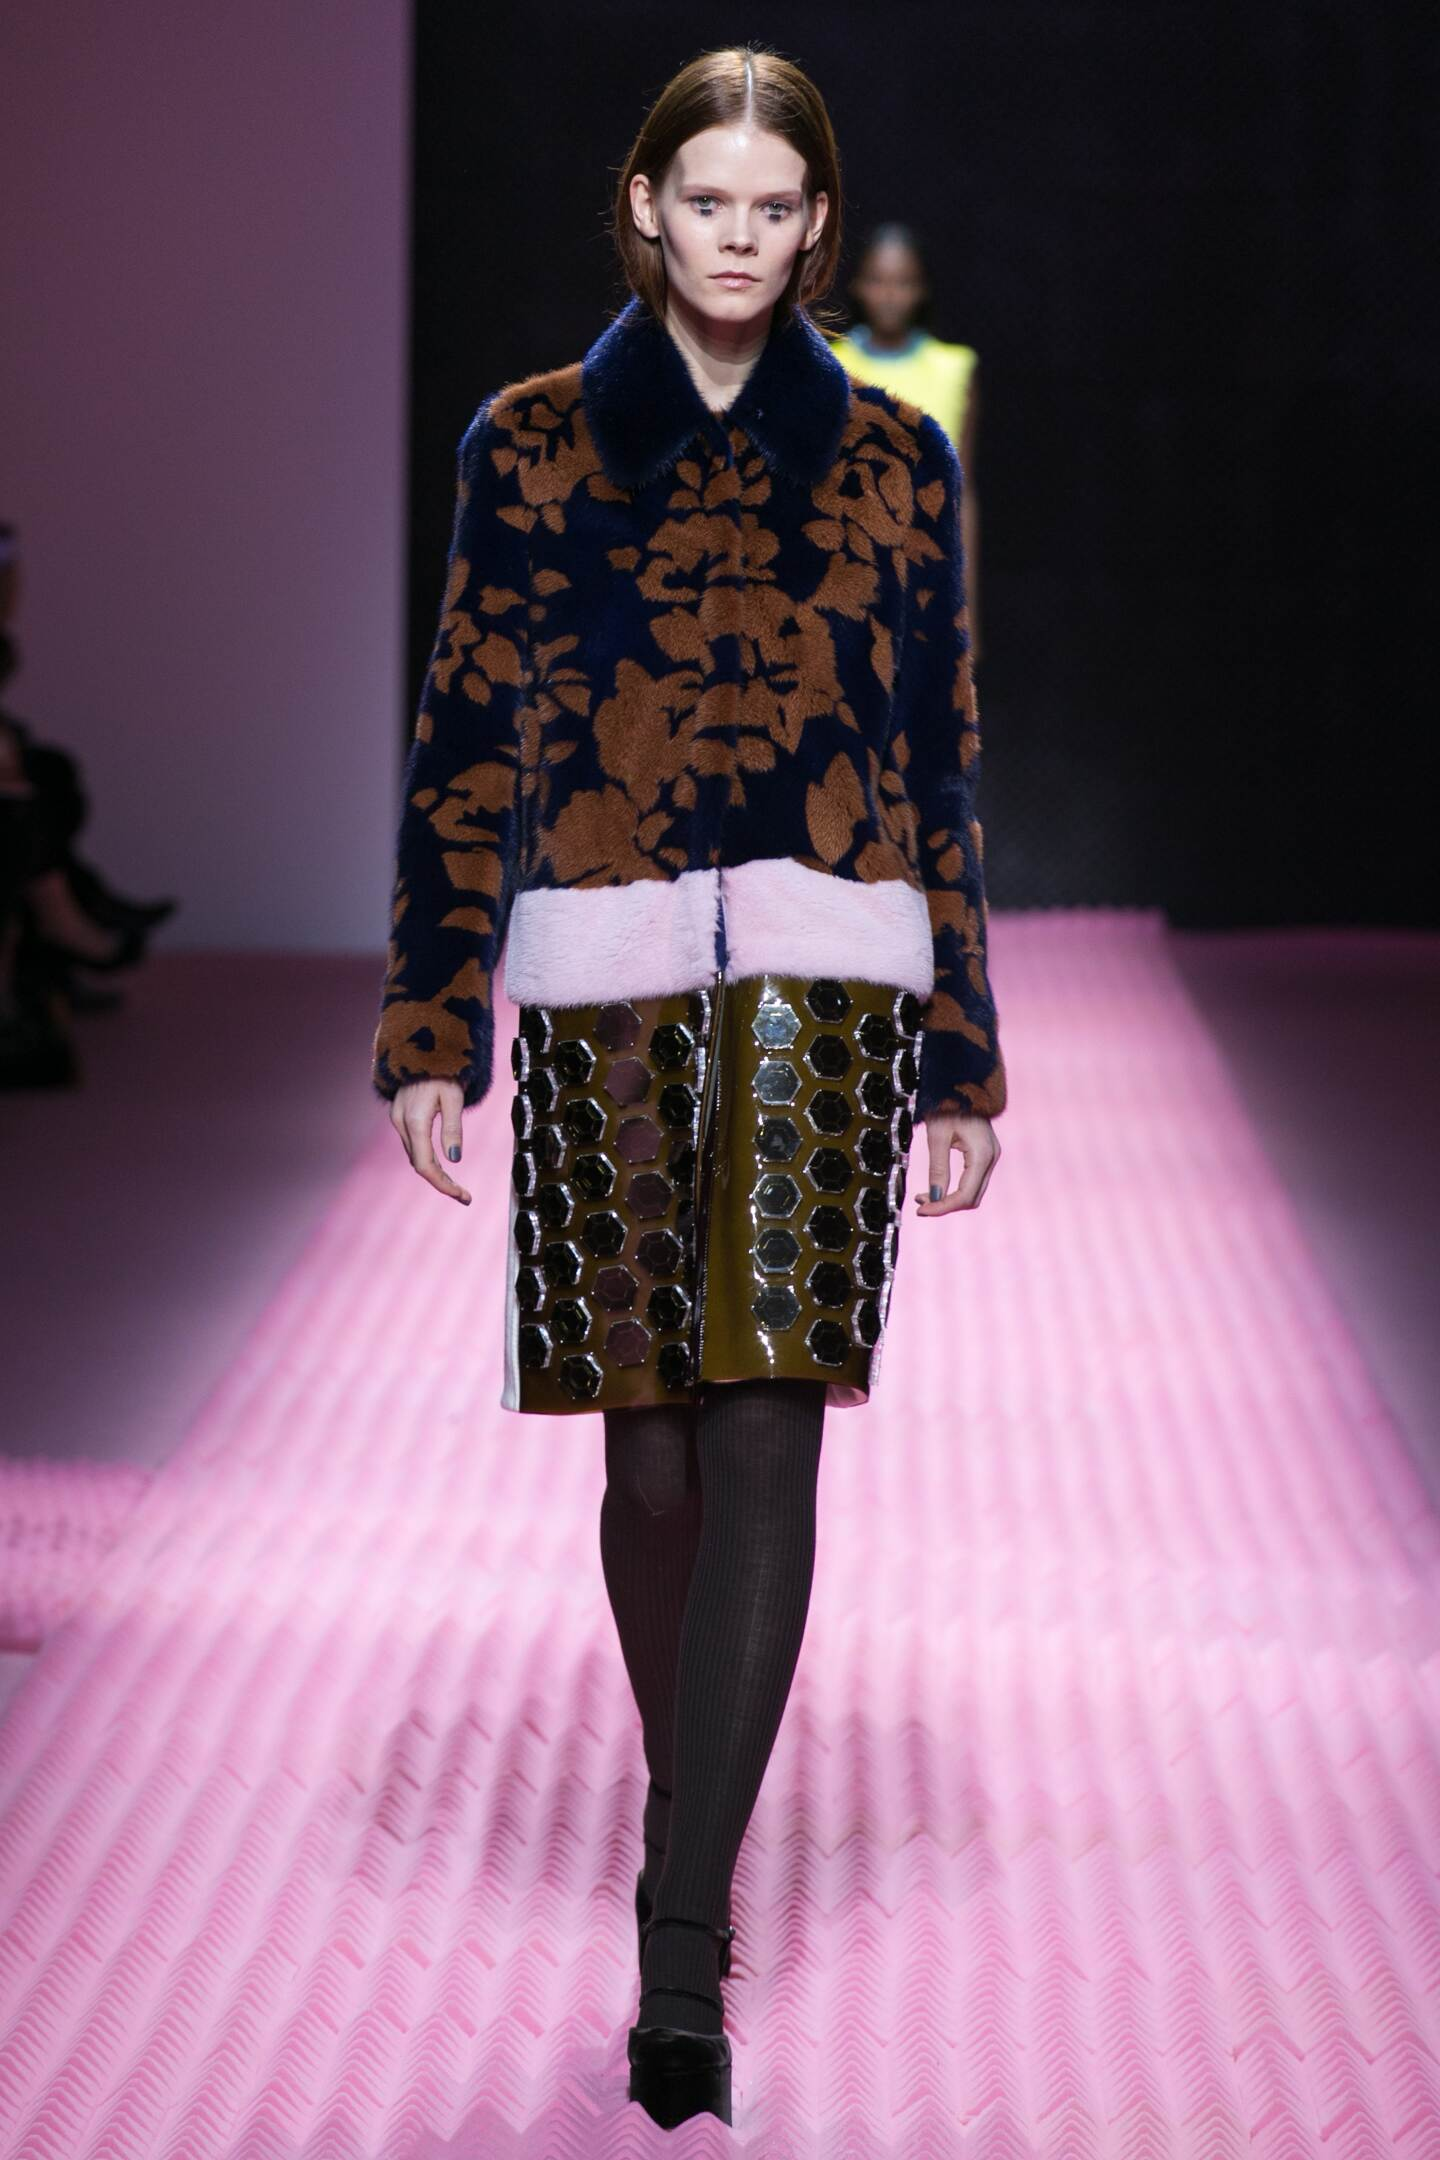 Catwalk Mary Katrantzou Womenswear Collection Winter 2015